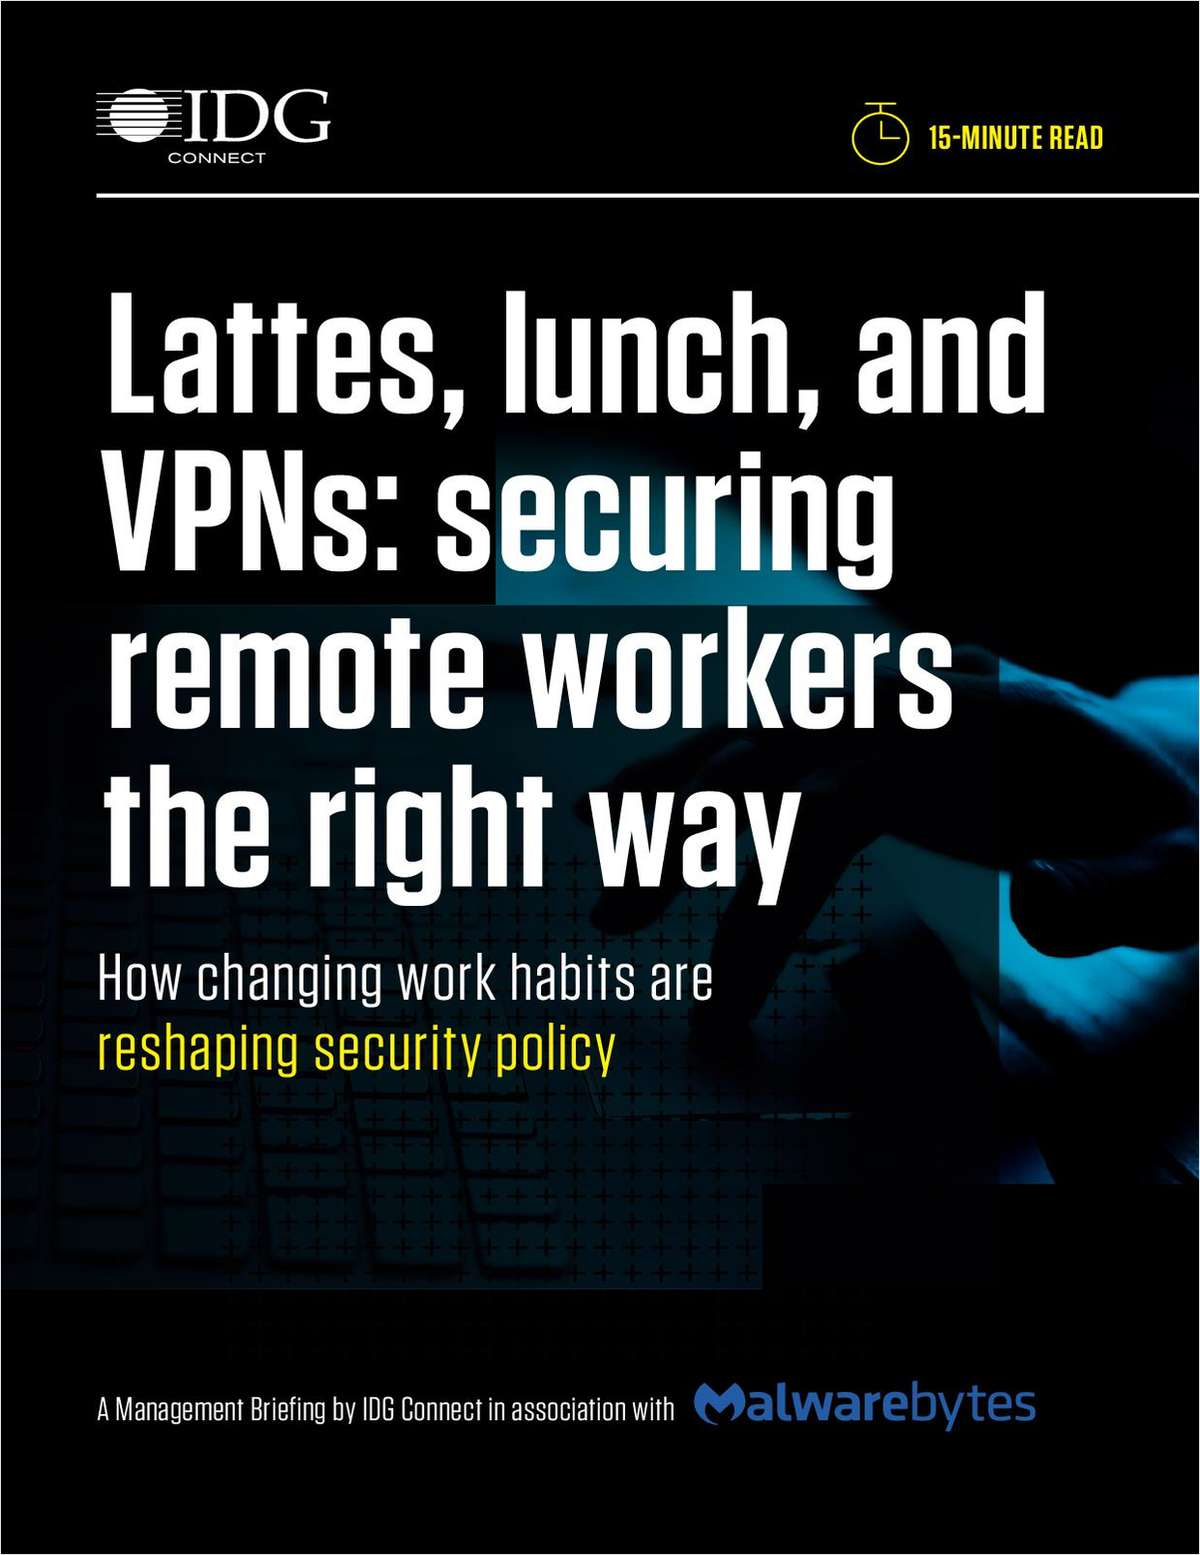 Lattes, lunch, and VPN: securing remote workers the right way